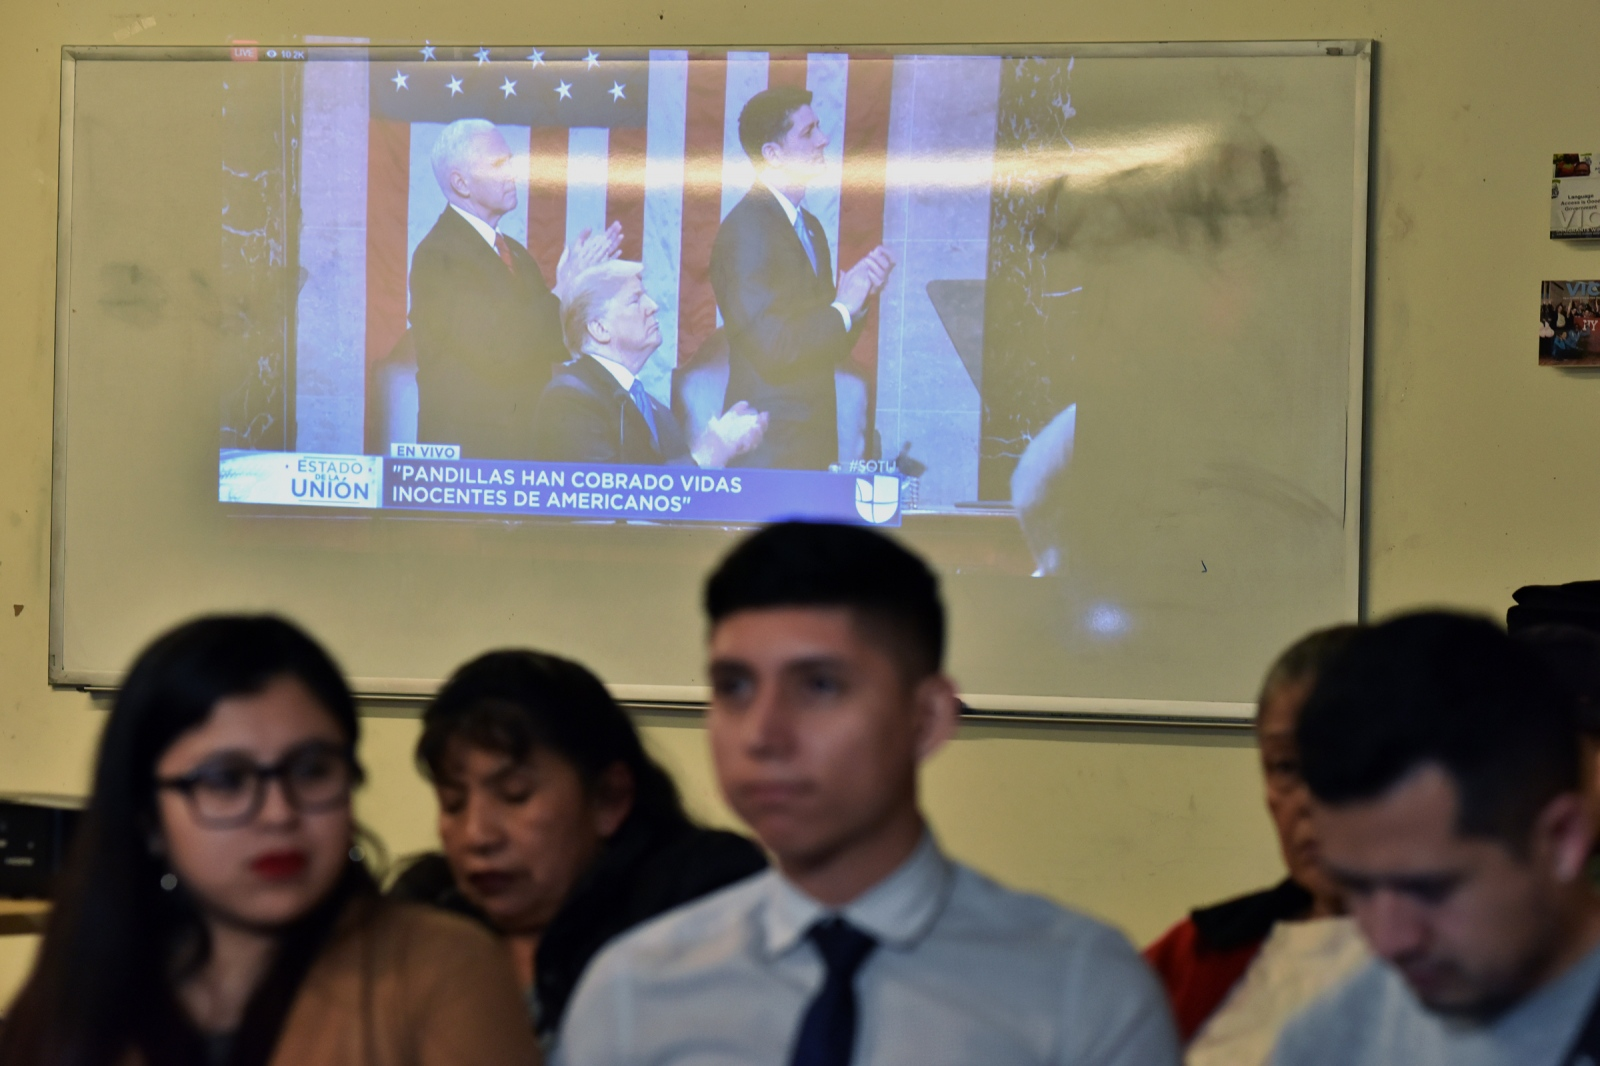 DACA recipients and Dreamers Yatziri Tovar,25 student of Political Sciences at City College and Anthony Alarcon student of Studies Film turn theirs backs on U.S President Donald Trump on screen during the State of Union speech at the pro-immigrant headquarters 'Make The Road New York' in Jackson Heights, Queens,on January 30, 2018 in New York City.